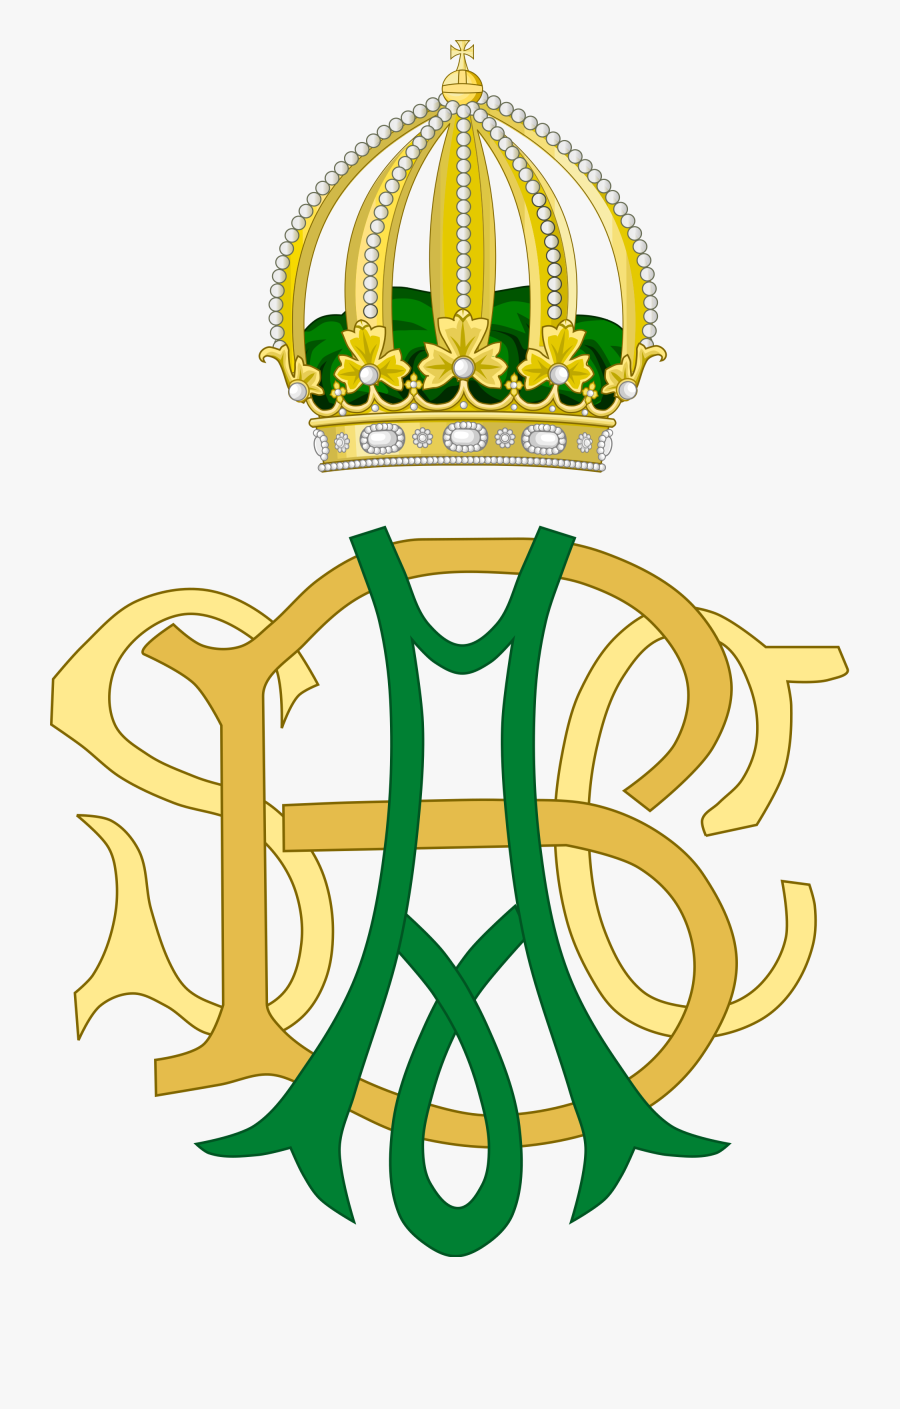 Royal Crown Of Spain Clipart , Png Download - Royal Crown Of Spain, Transparent Clipart